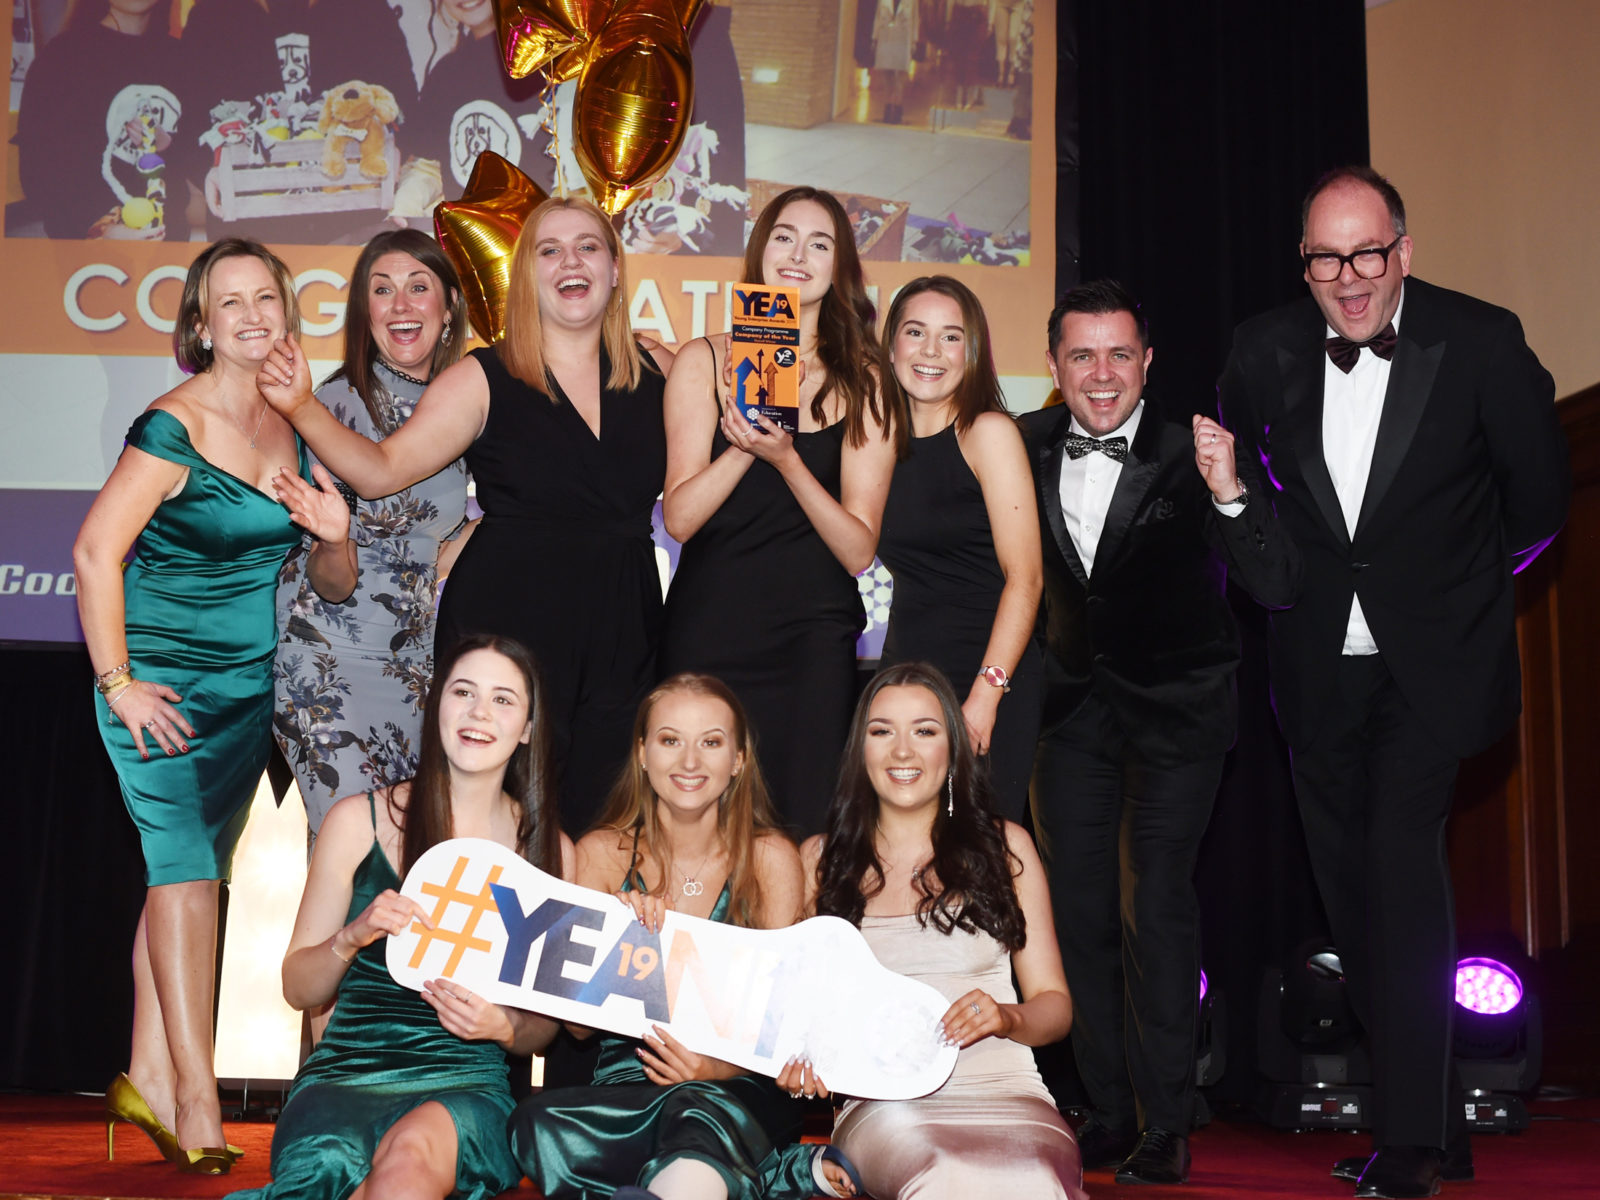 YOUNG ENTERPRISE AWARDS - Company of the Year